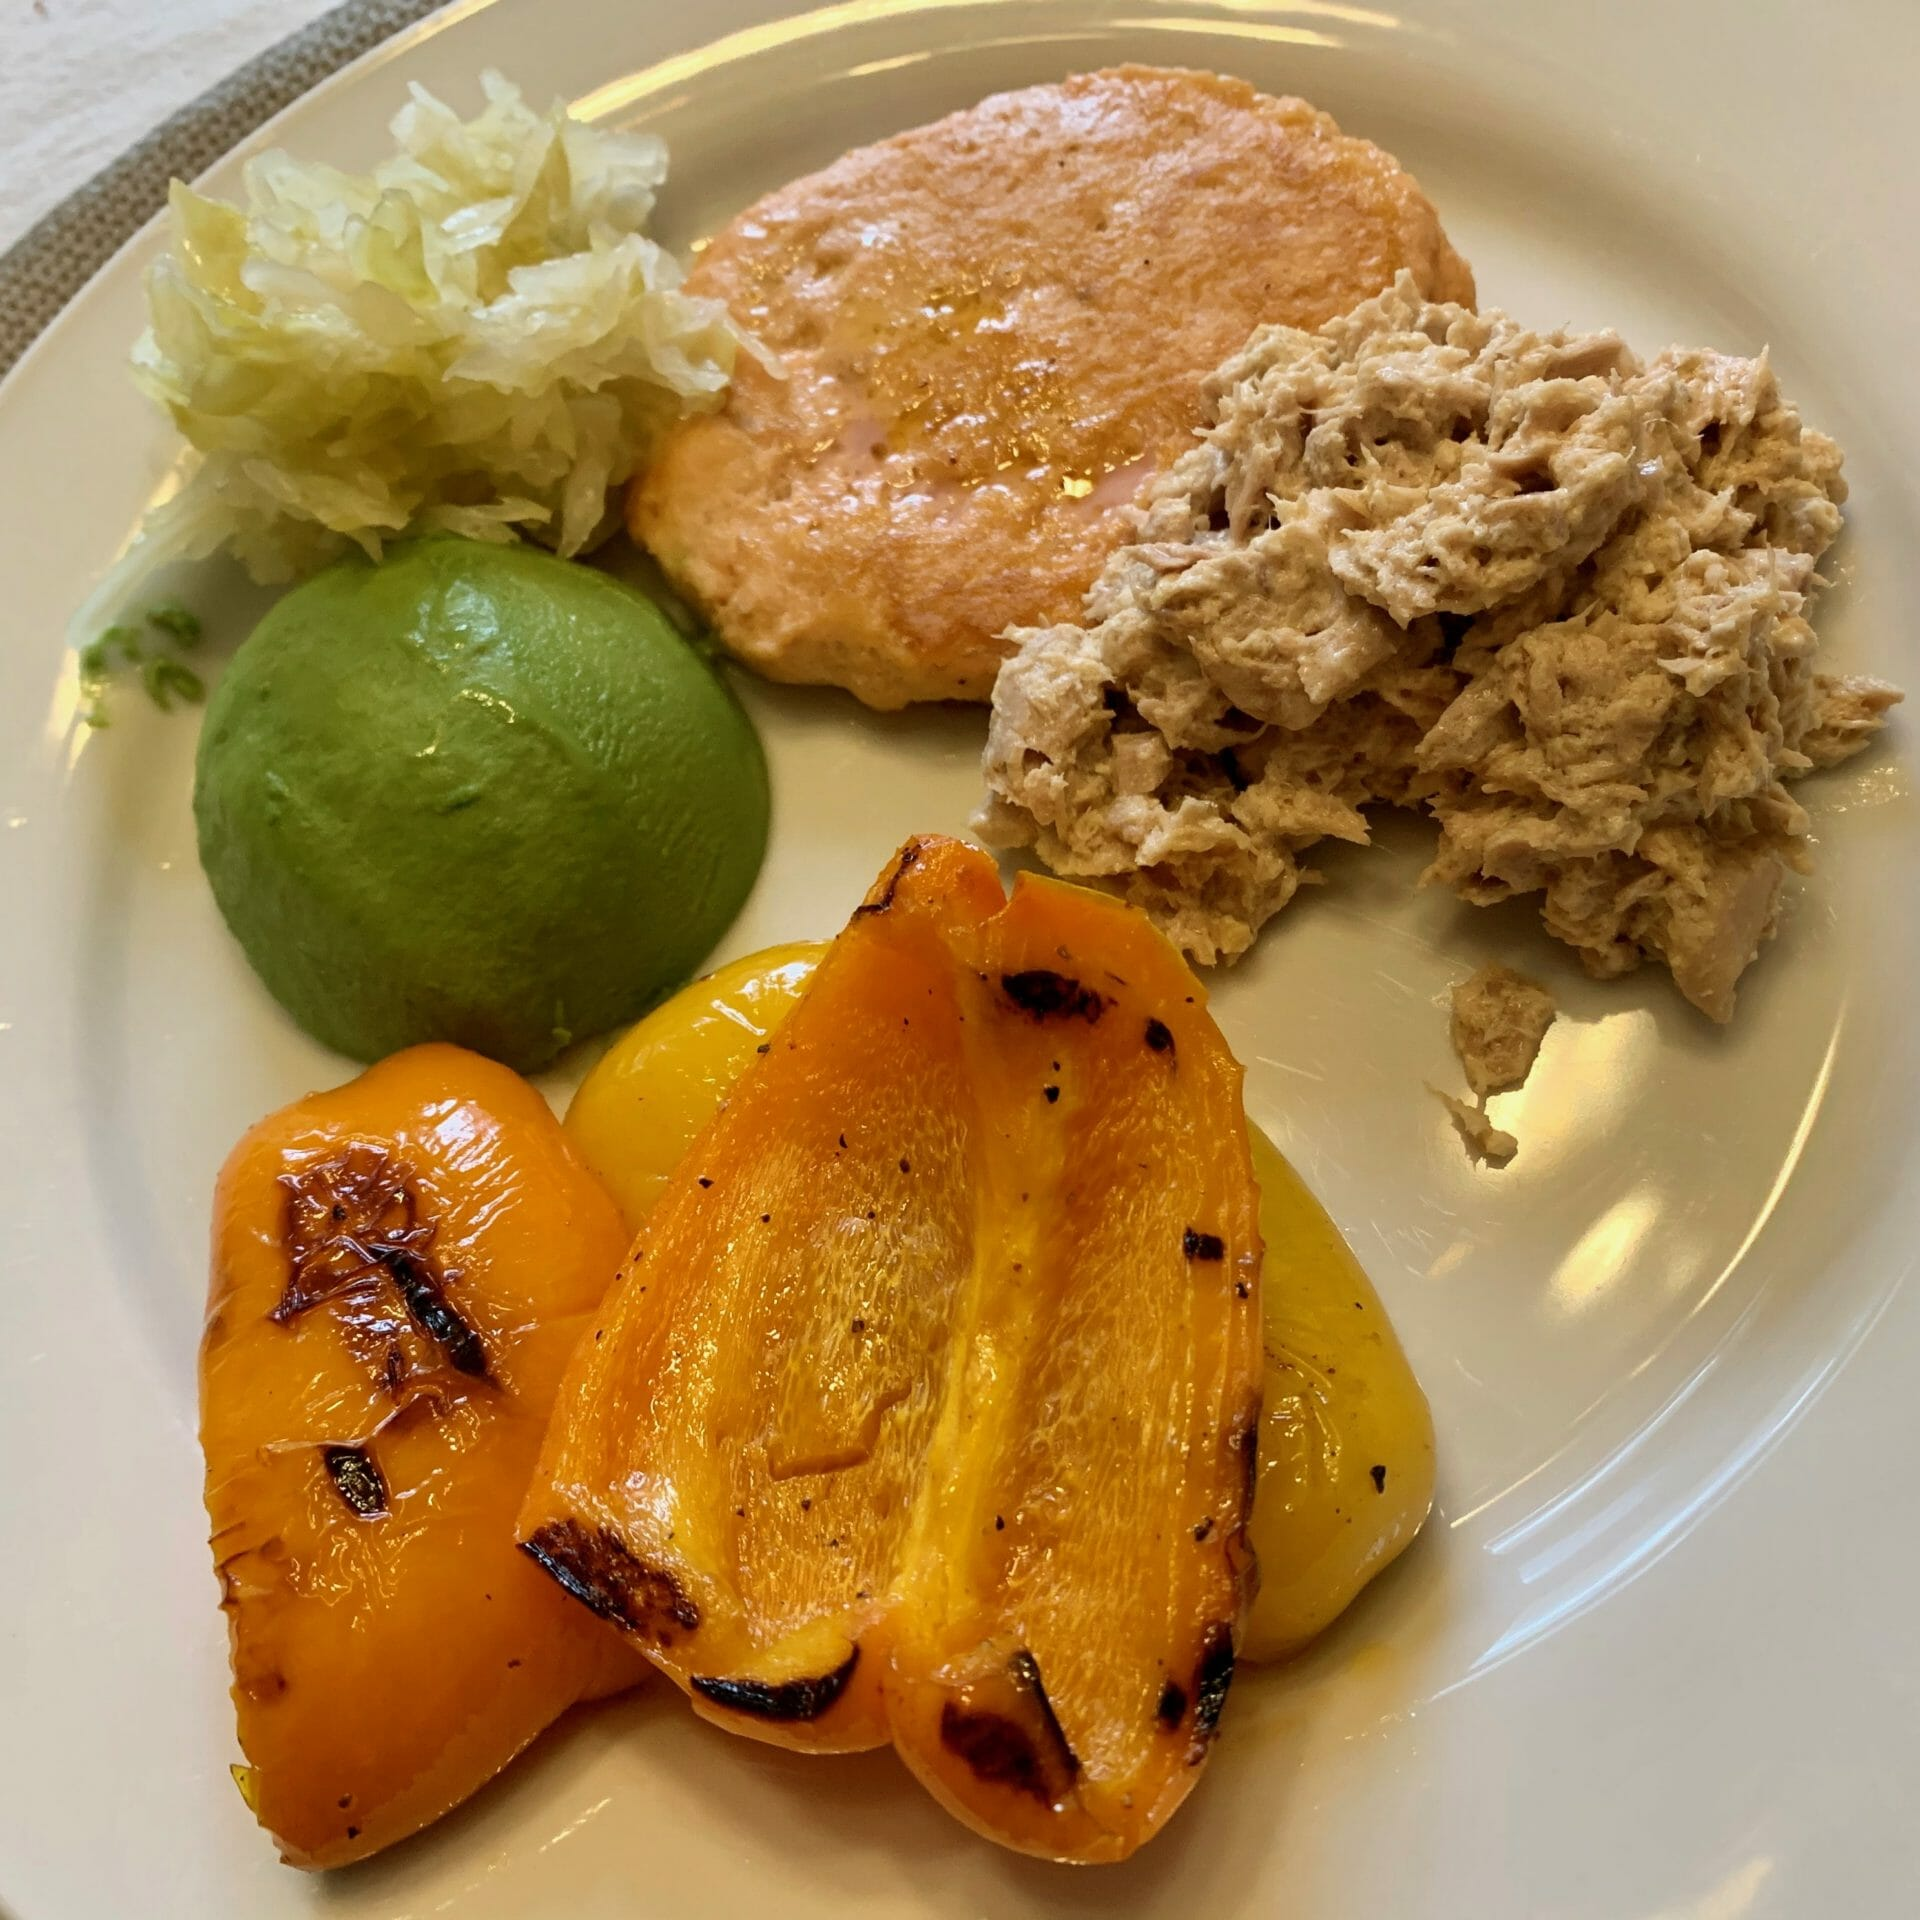 Salmon paddies (Costco) with canned tuna (and mayo), grilled peppers, avocado and sauerkraut